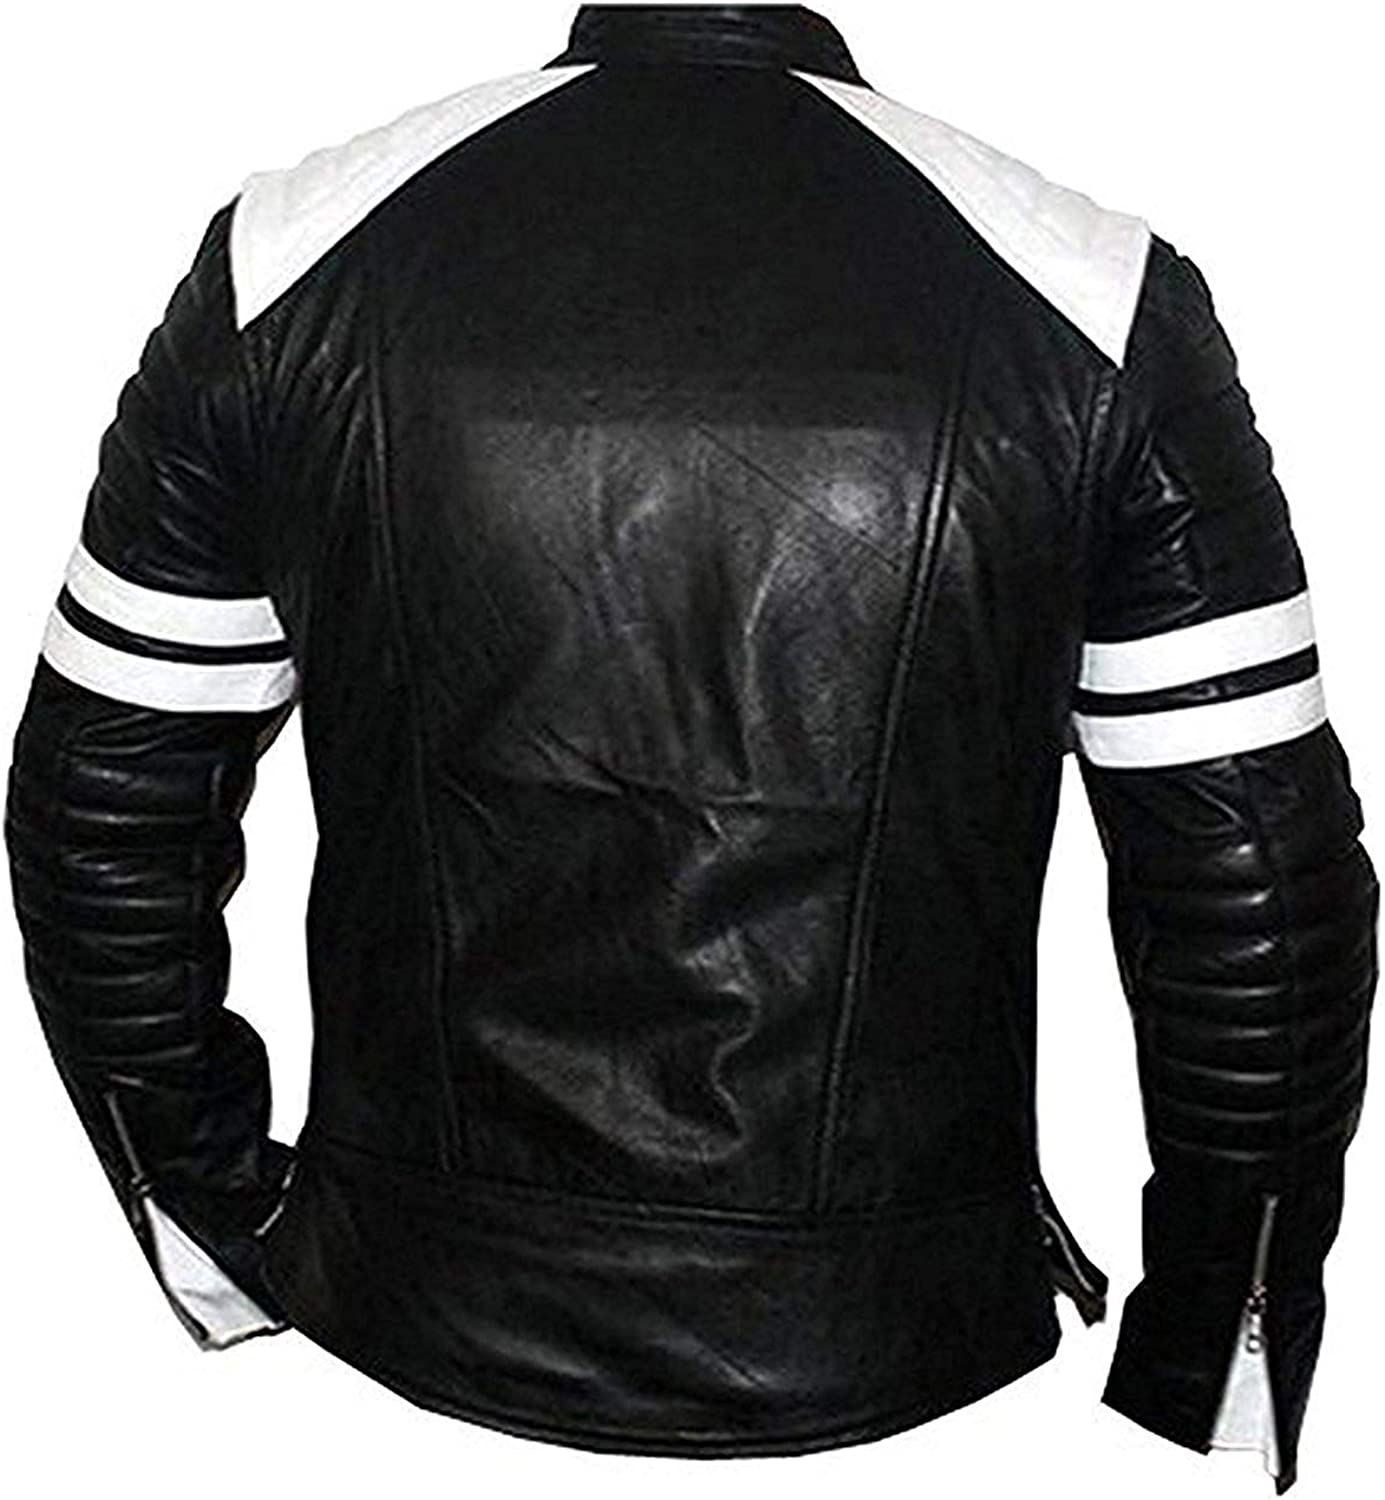 Zubacom Fight Club Brad Pitt White Strapes Black Leather Jacket Mens Leather Jacket